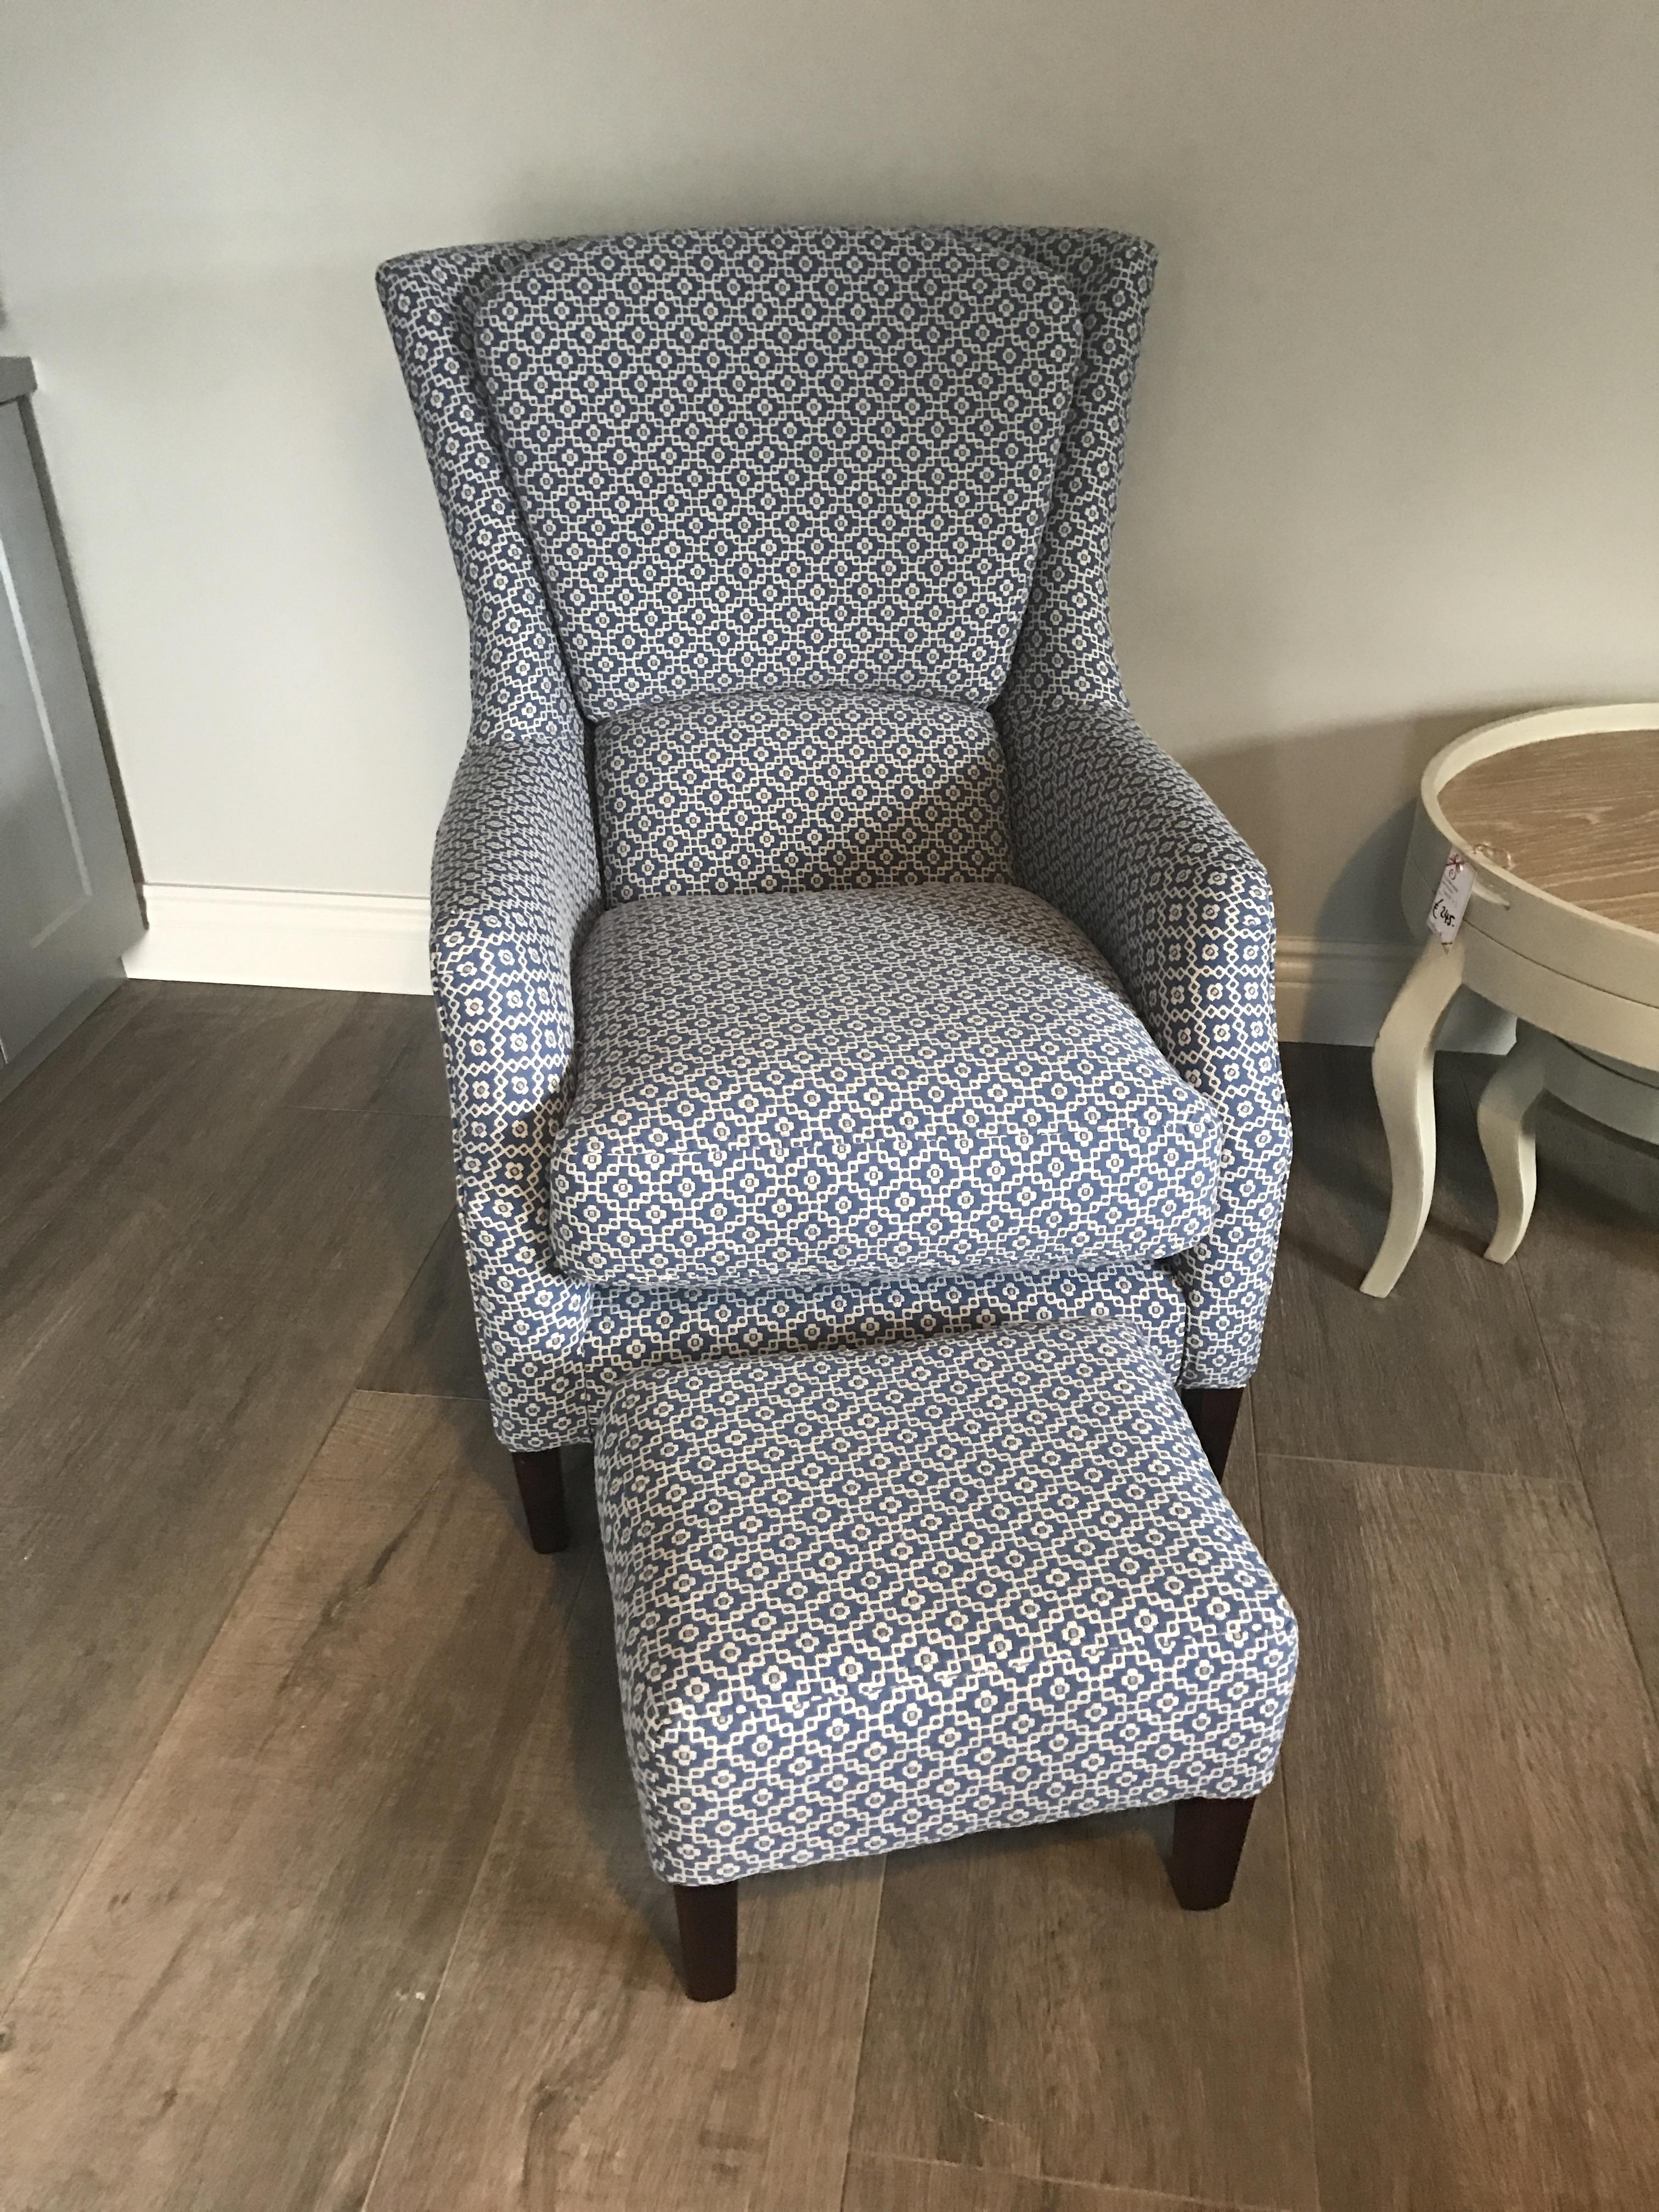 harvard chair with matching footstool